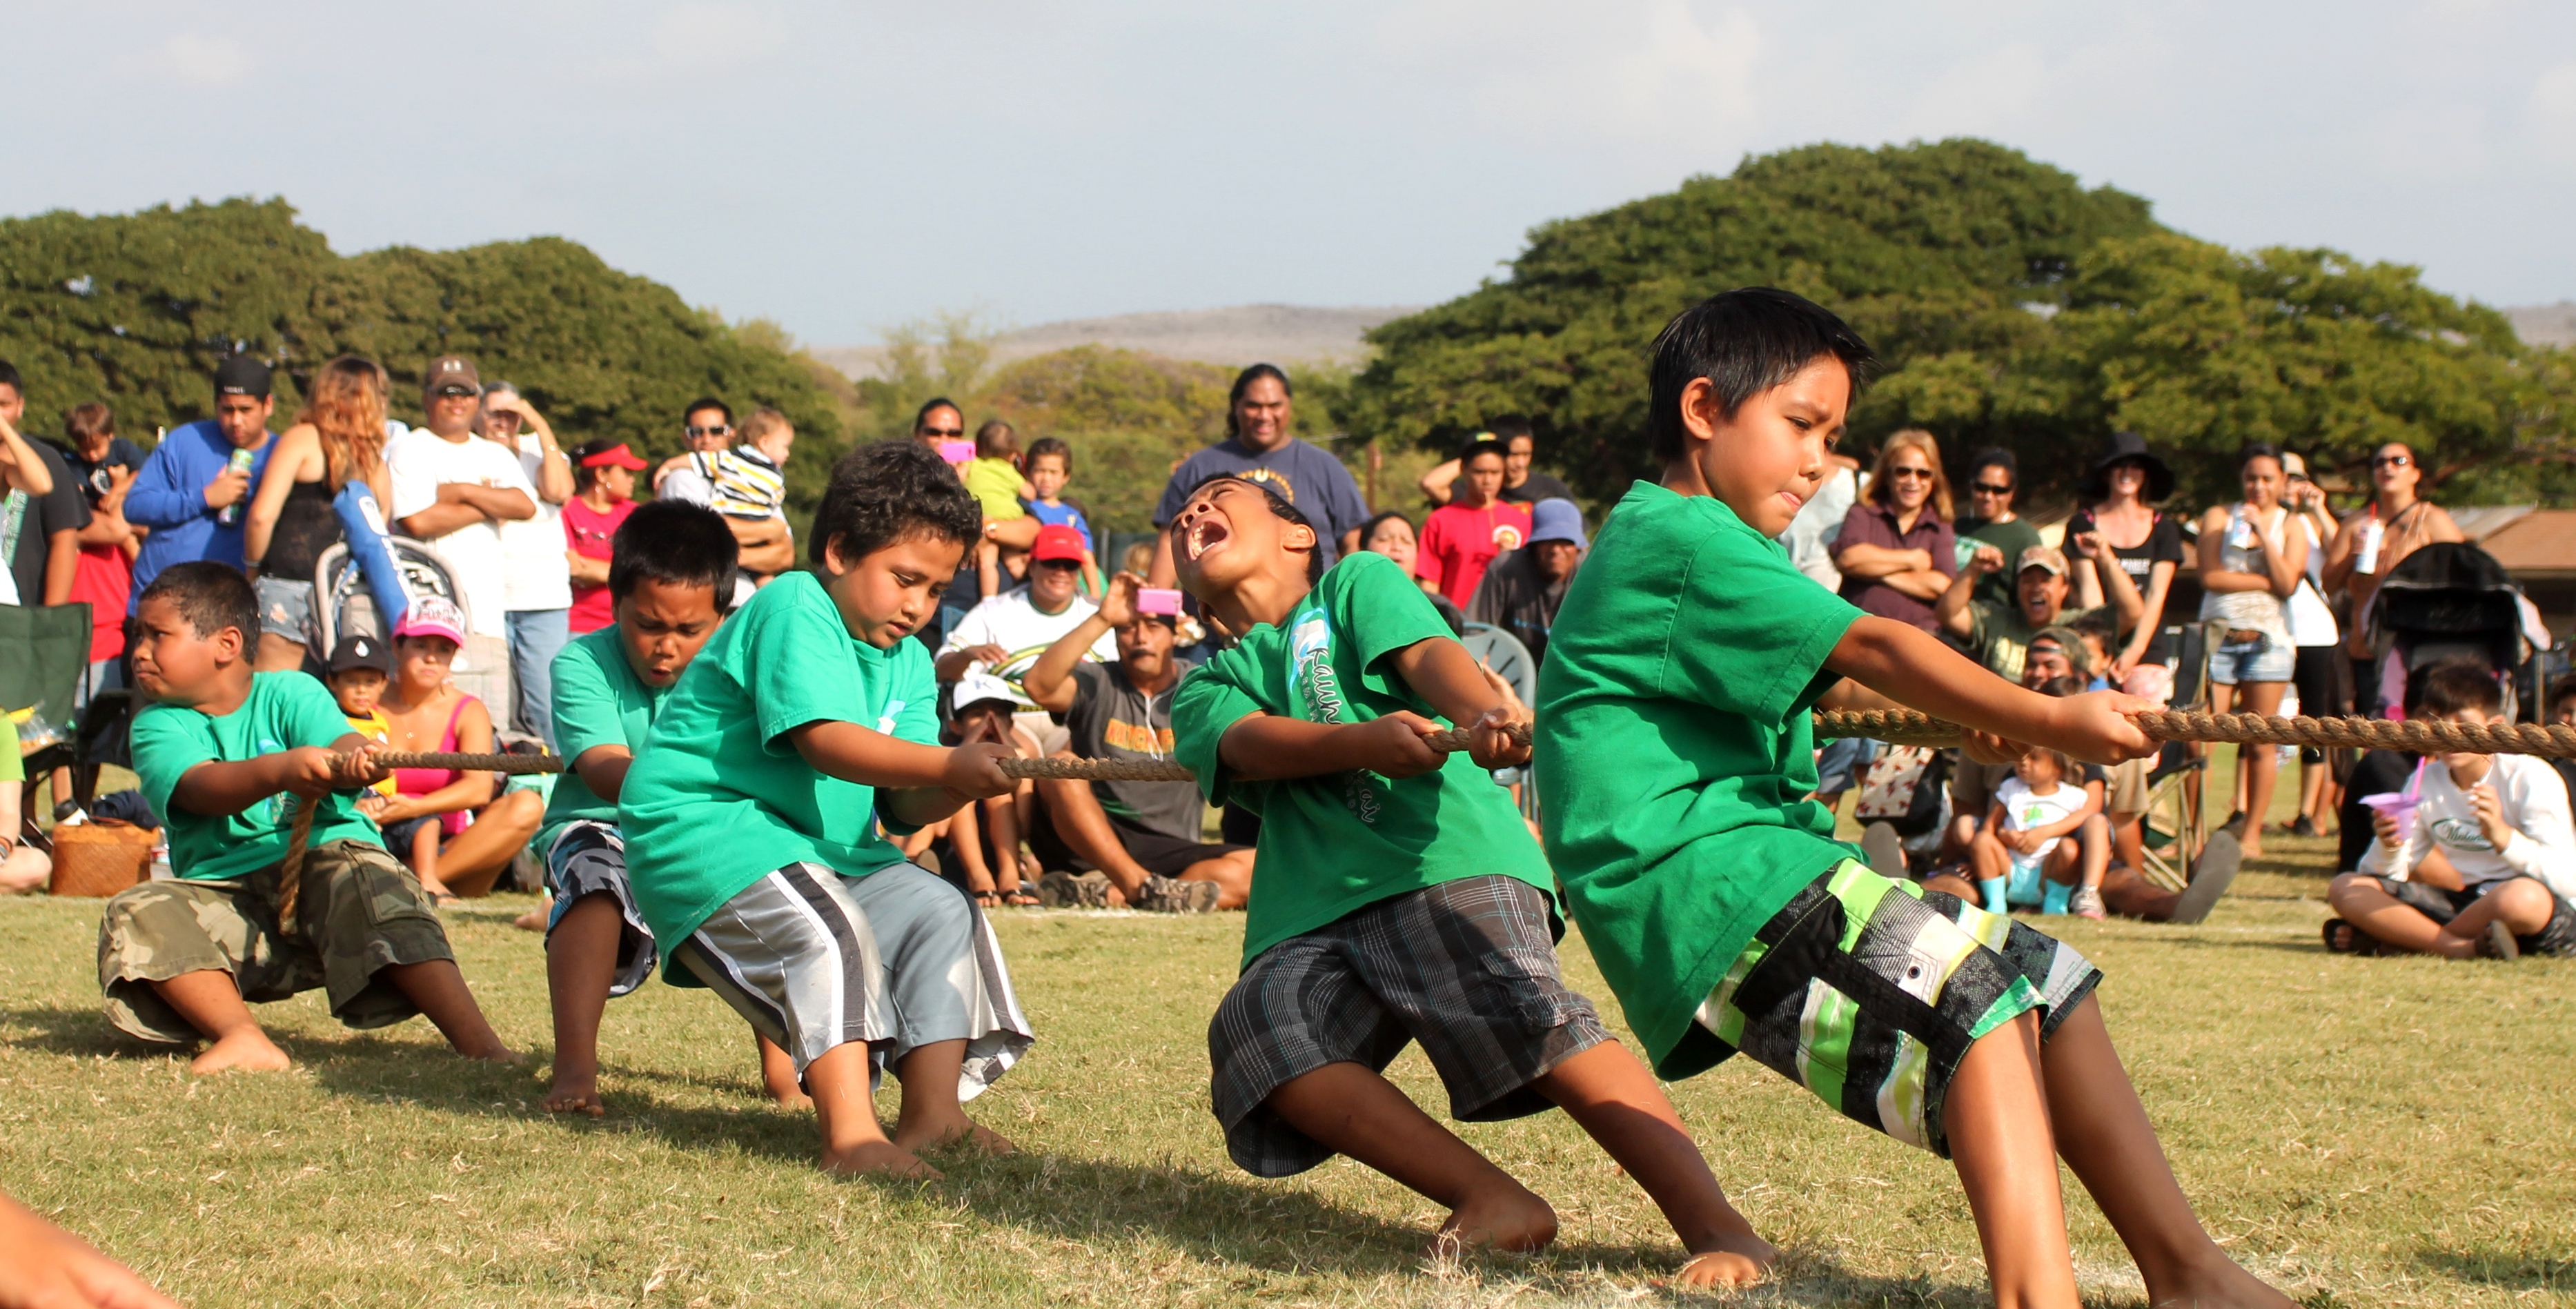 Hukihuki participants tug for victory at Saturday's Makahiki games